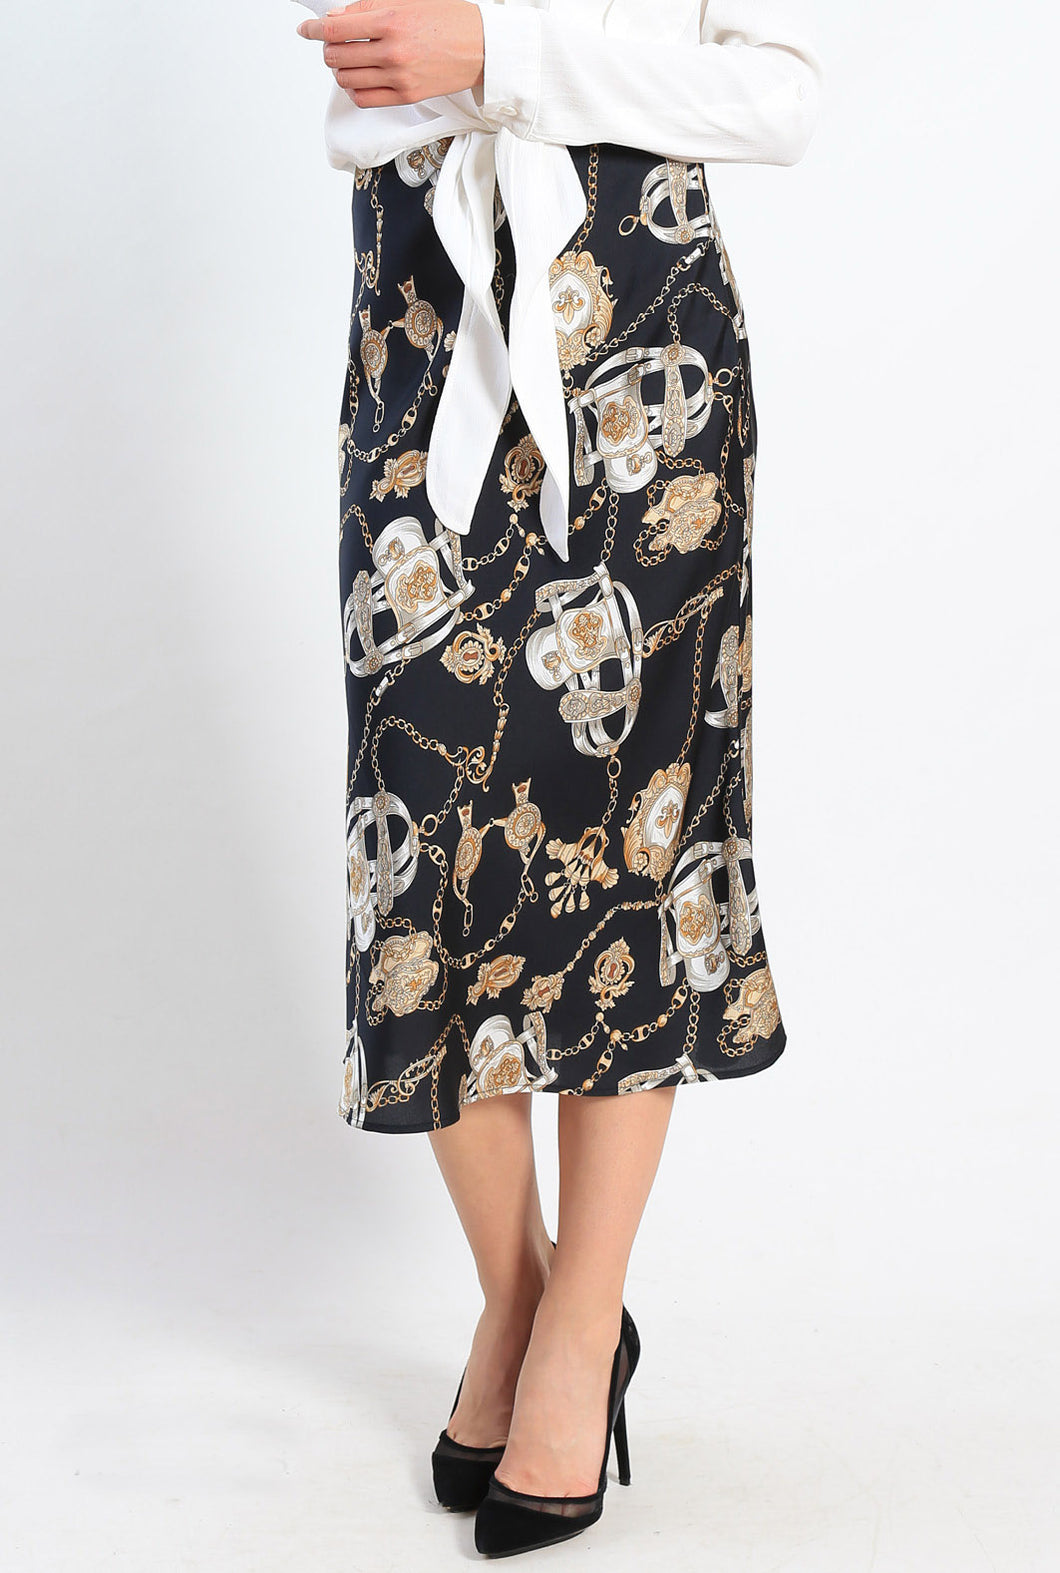 AY179-3SS Chain Print Skirt (Pack) New Arrivals